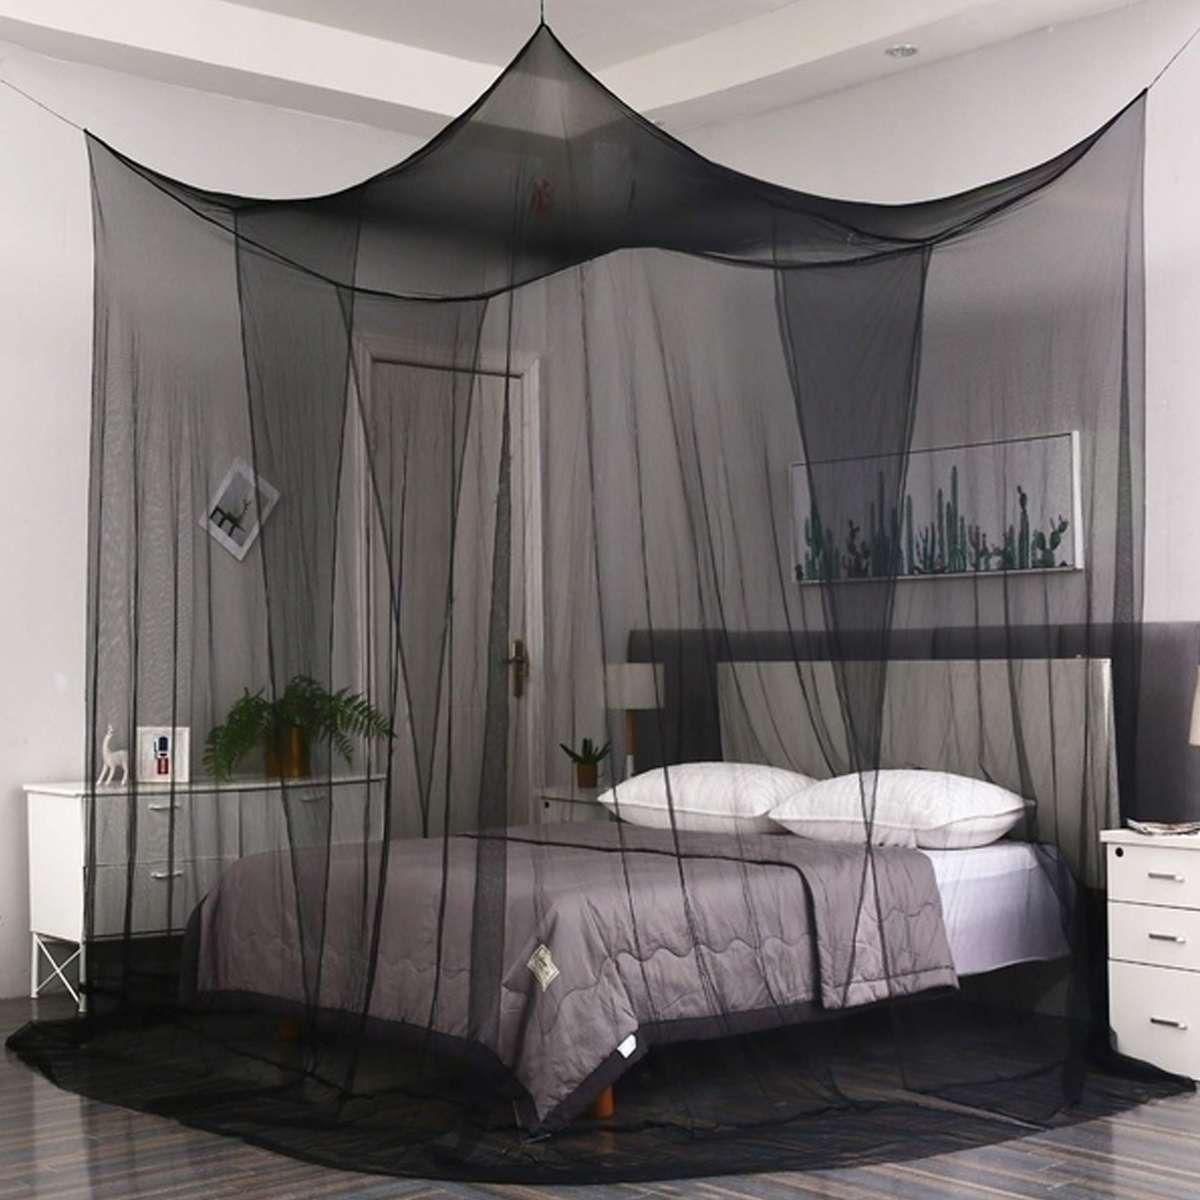 Moustiquaire Canopy White Black Four Corner Post Student Canopy Bed Mosquito Net Netting Queen King Size Mosquito Net Aliexpress